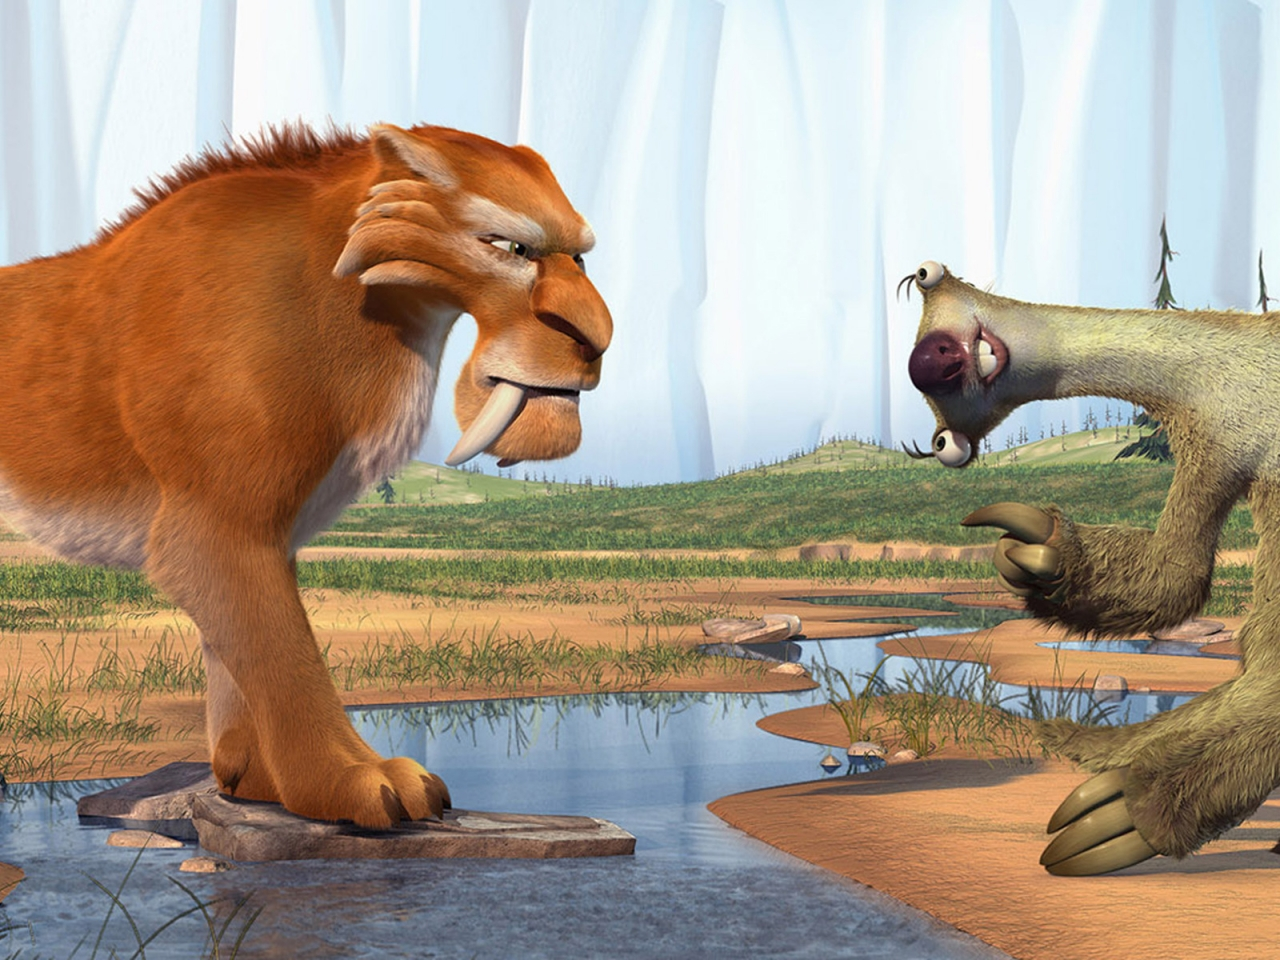 Ice Age Diego and Sid for 1280 x 960 resolution